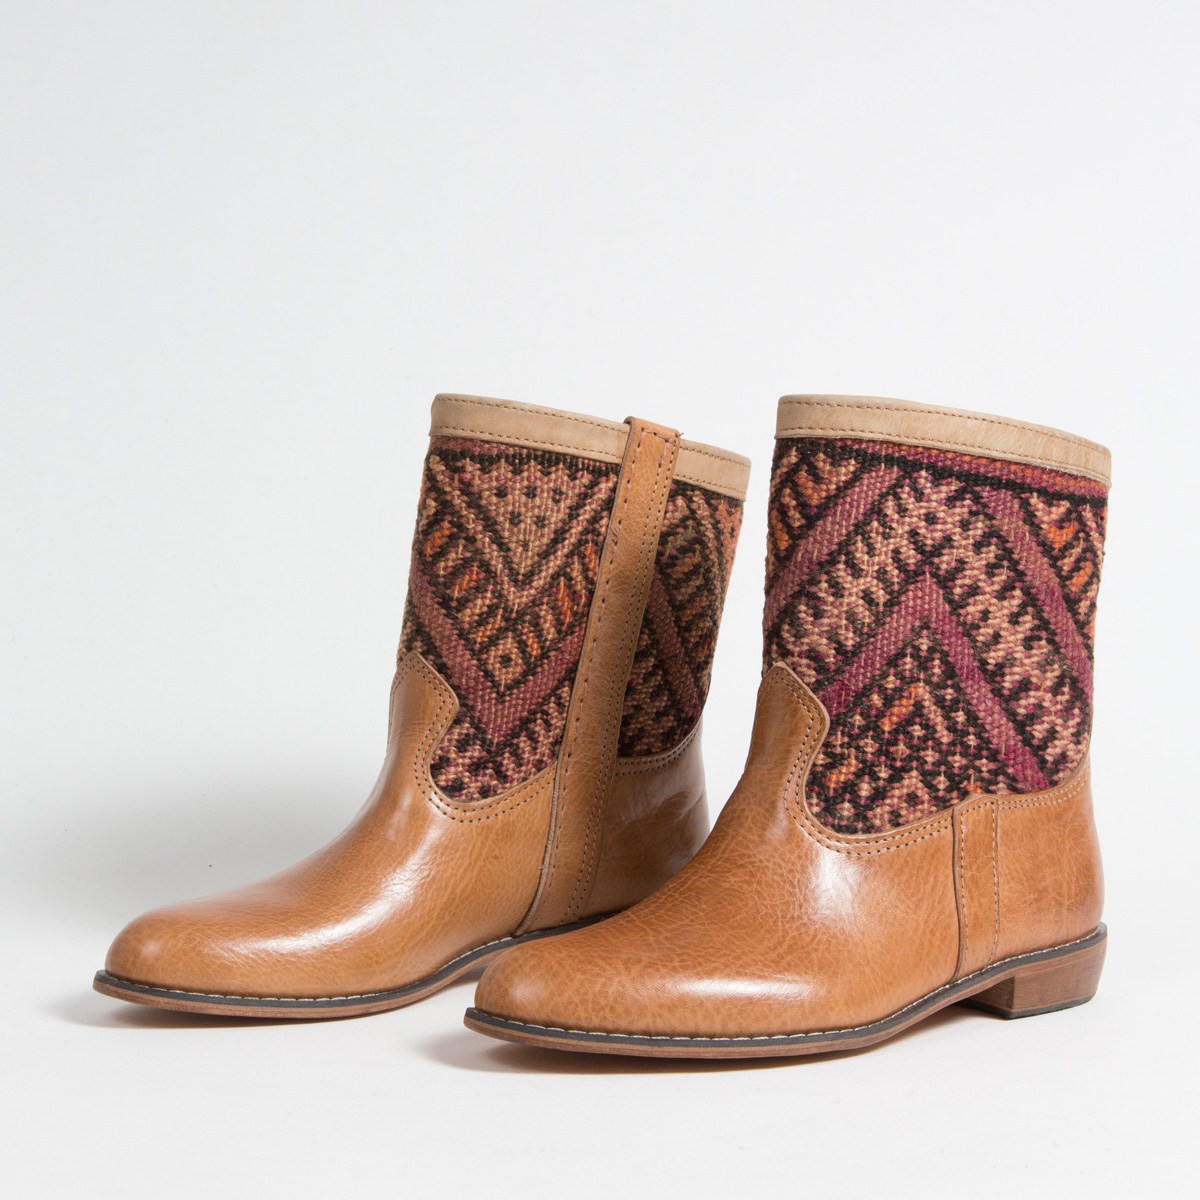 Bottines Kilim cuir mababouche artisanales (Réf. GC4-40)